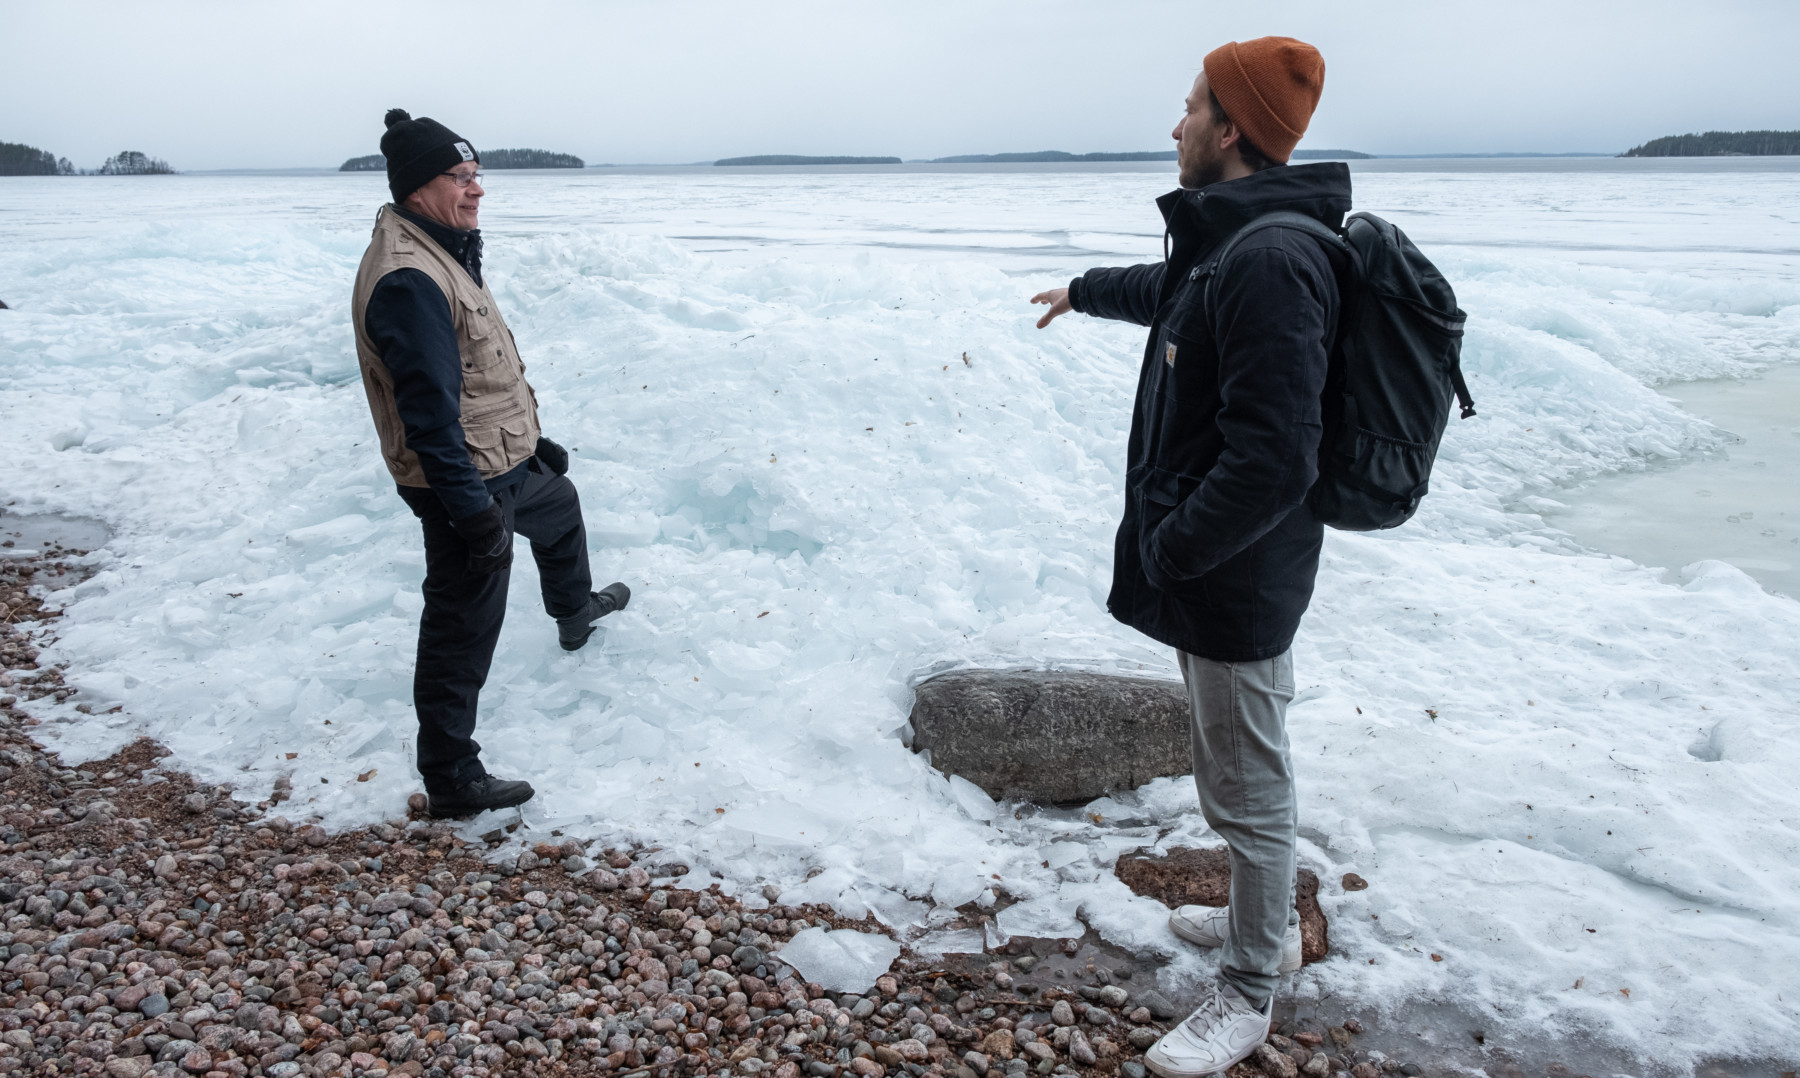 Two men survey piles of ice on a lakeshore.